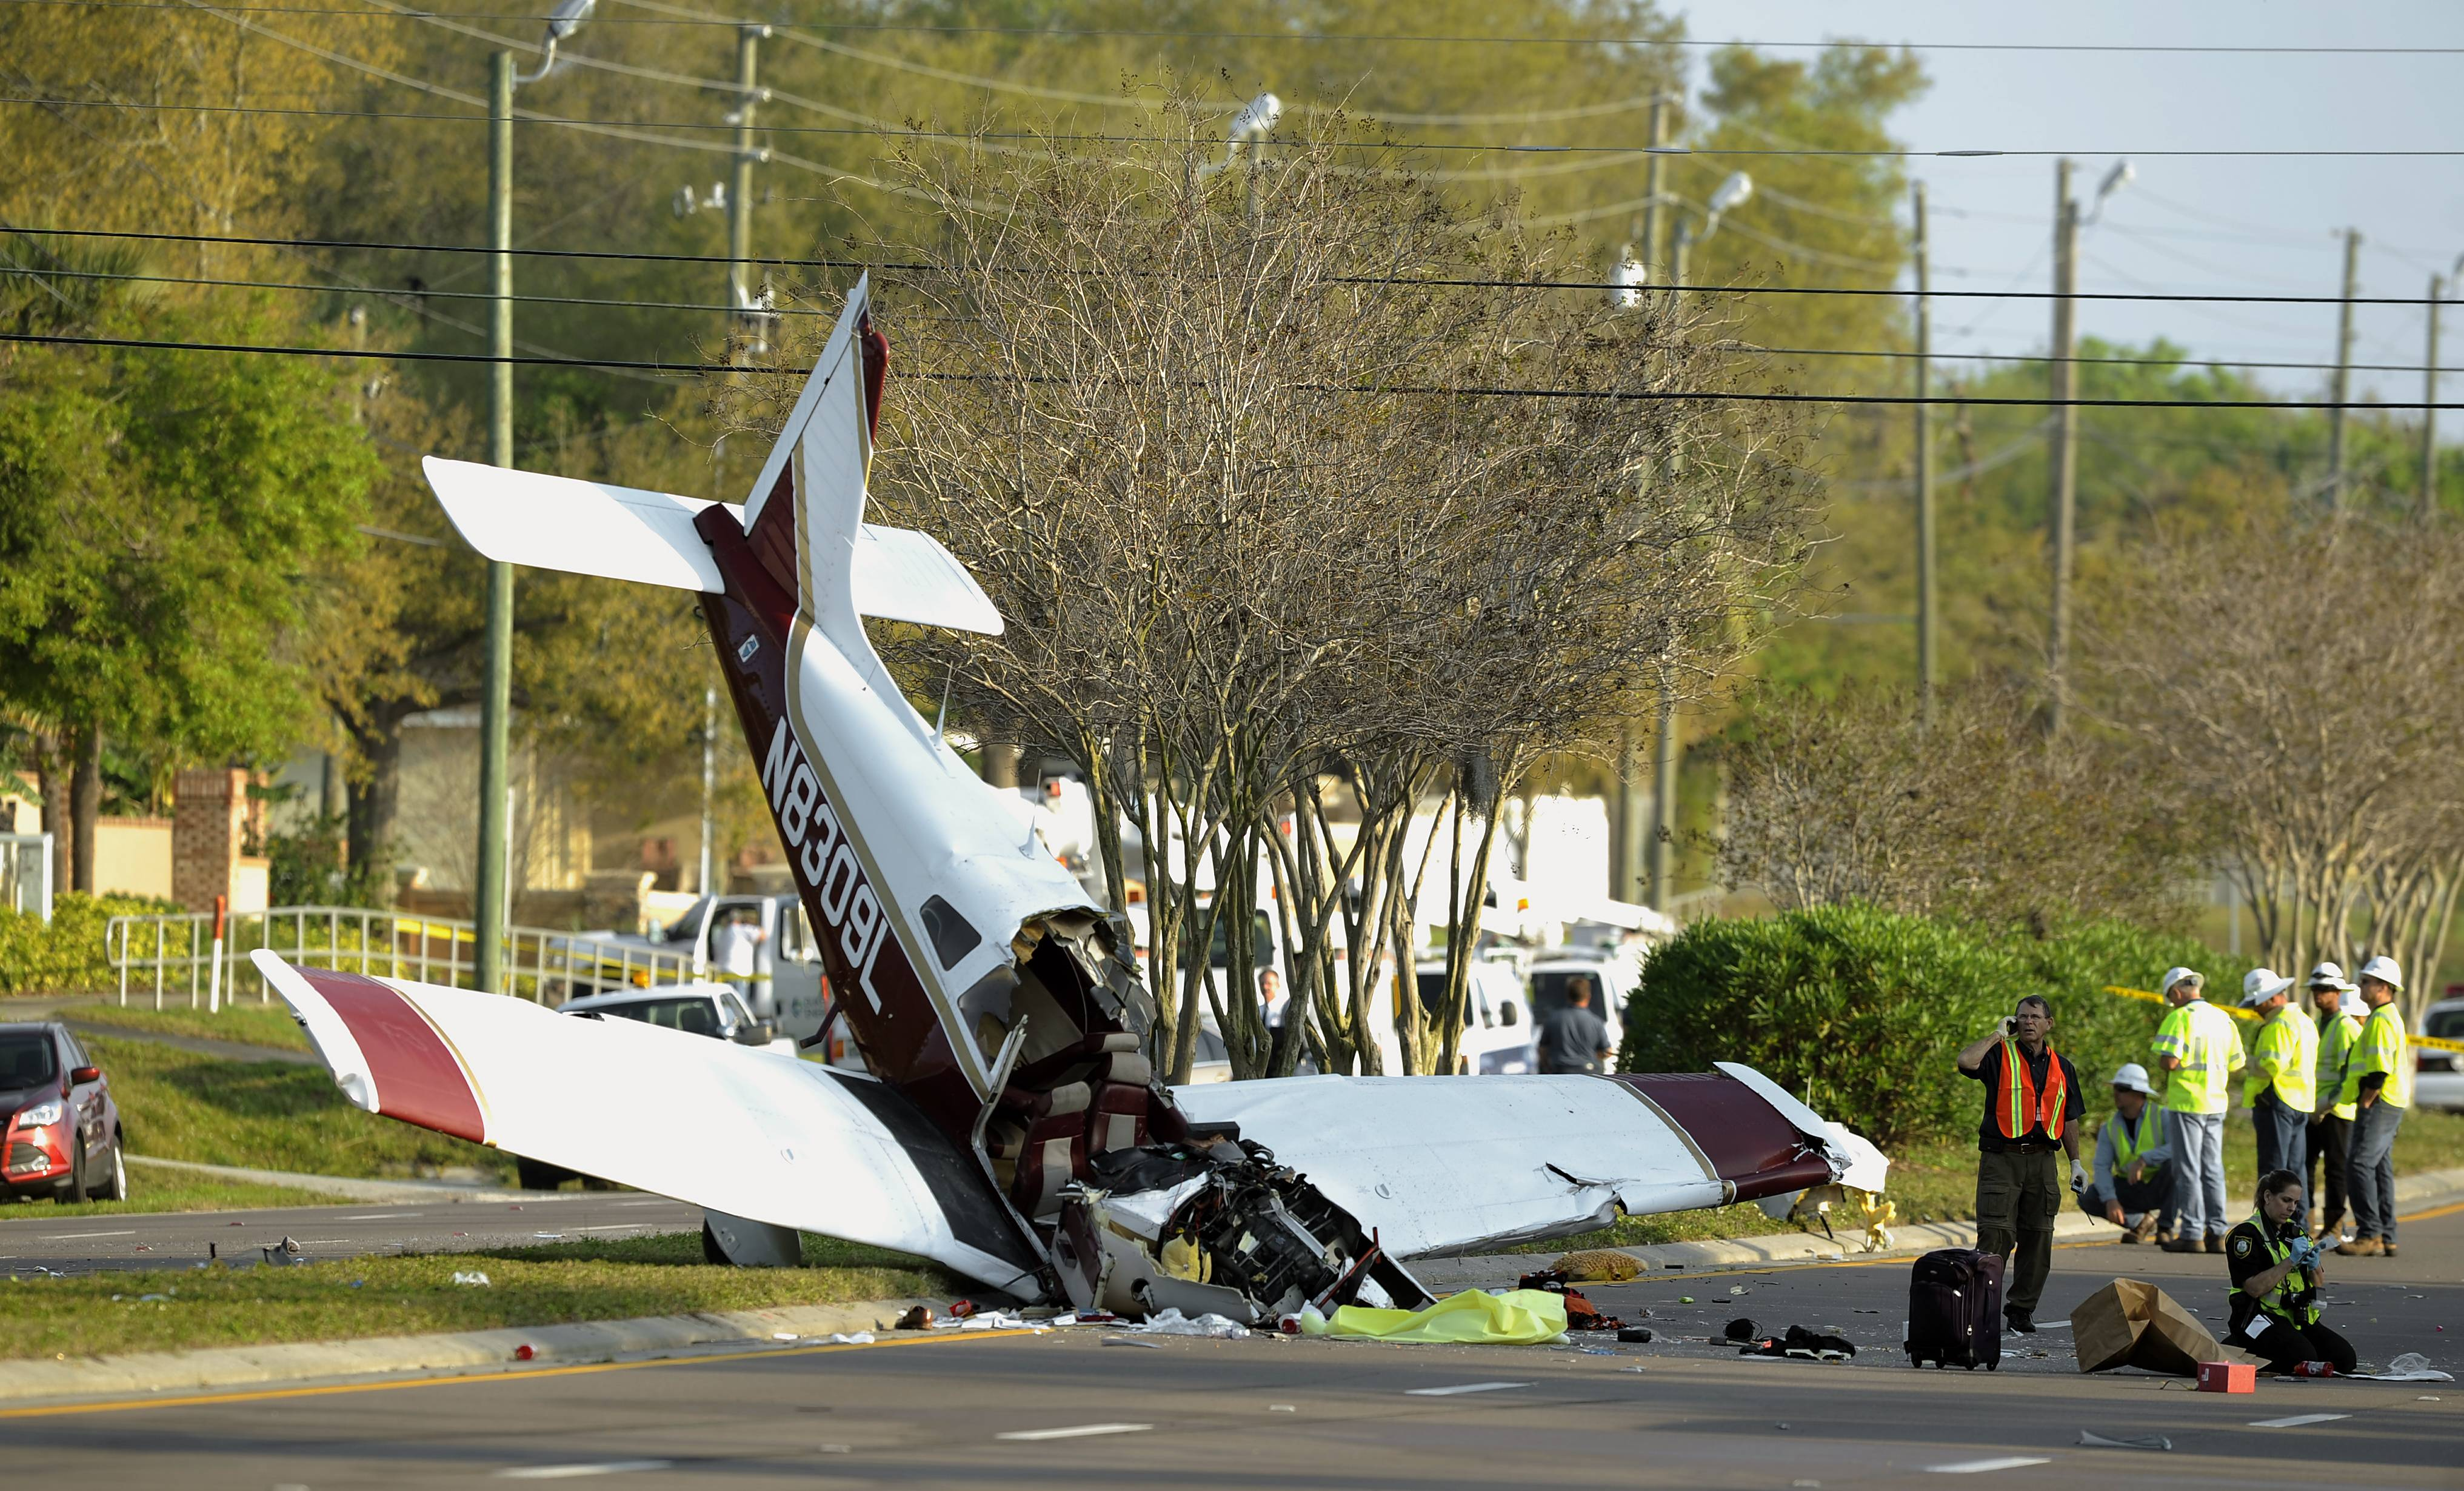 Fifty-three-year-old Jeffrey Bronken, of Round Lake, was killed Saturday when his small plane crashed in Clearwater, Fla. His daughter Katherine Bronken, 15, died from her injuries yesterday. A third person, Keyana Linbo, 15, a Grant Community High School student, remains in stable condition in a Florida hospital.